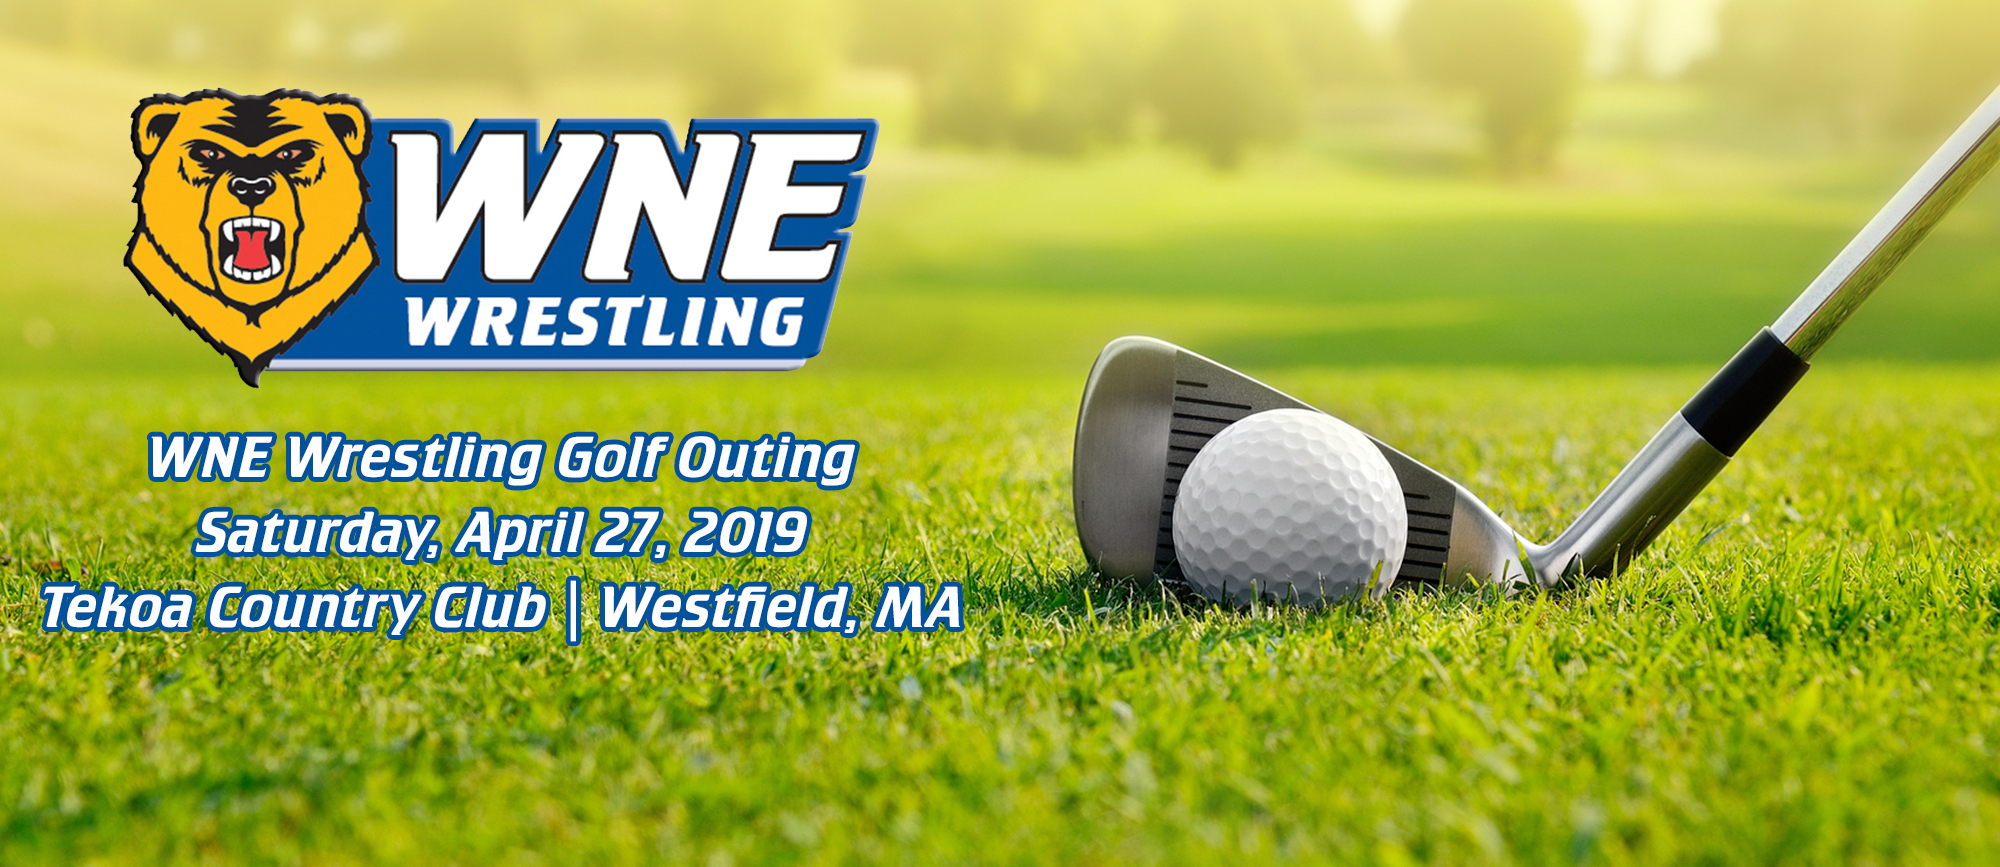 Registration Now Open for WNE Wrestling's Annual Golf Outing on Saturday, April 27